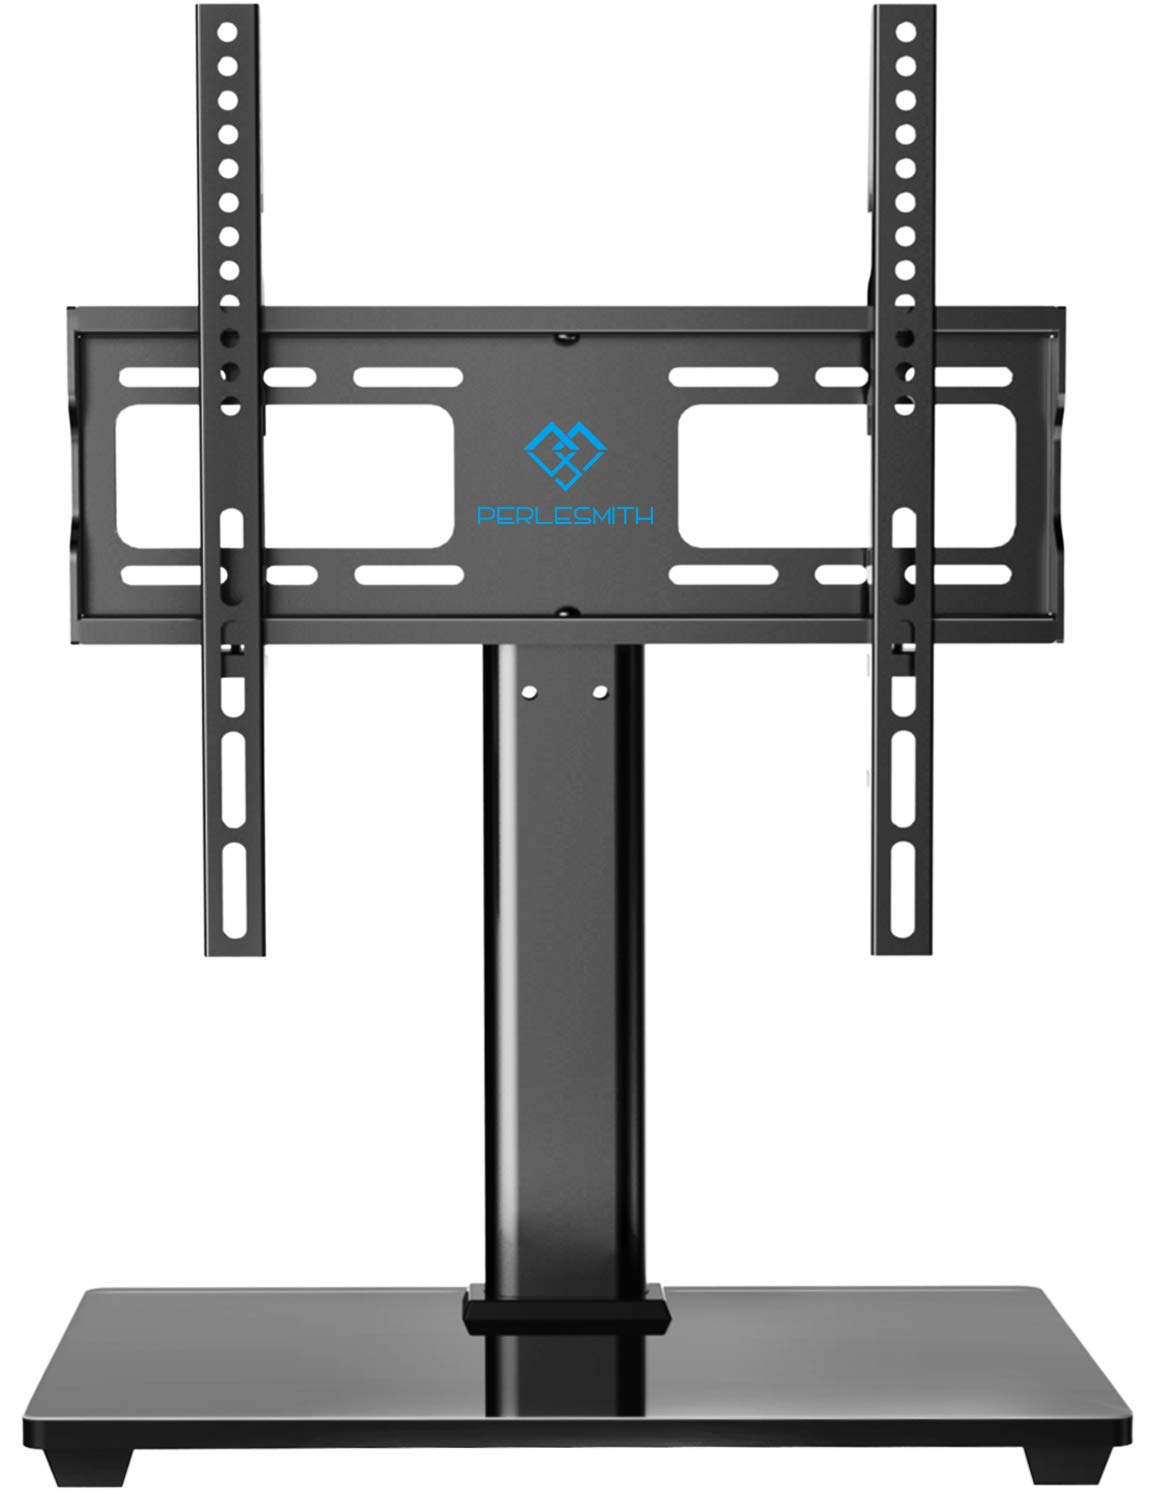 PERLESMITH Swivel Universal TV Stand / Base - Table Top TV Stand for 32-55 inch LCD LED TVs - Height Adjustable TV Mount Stand with Tempered Glass Base, VESA 400x400mm, Holds up to 88lbs by PERLESMITH